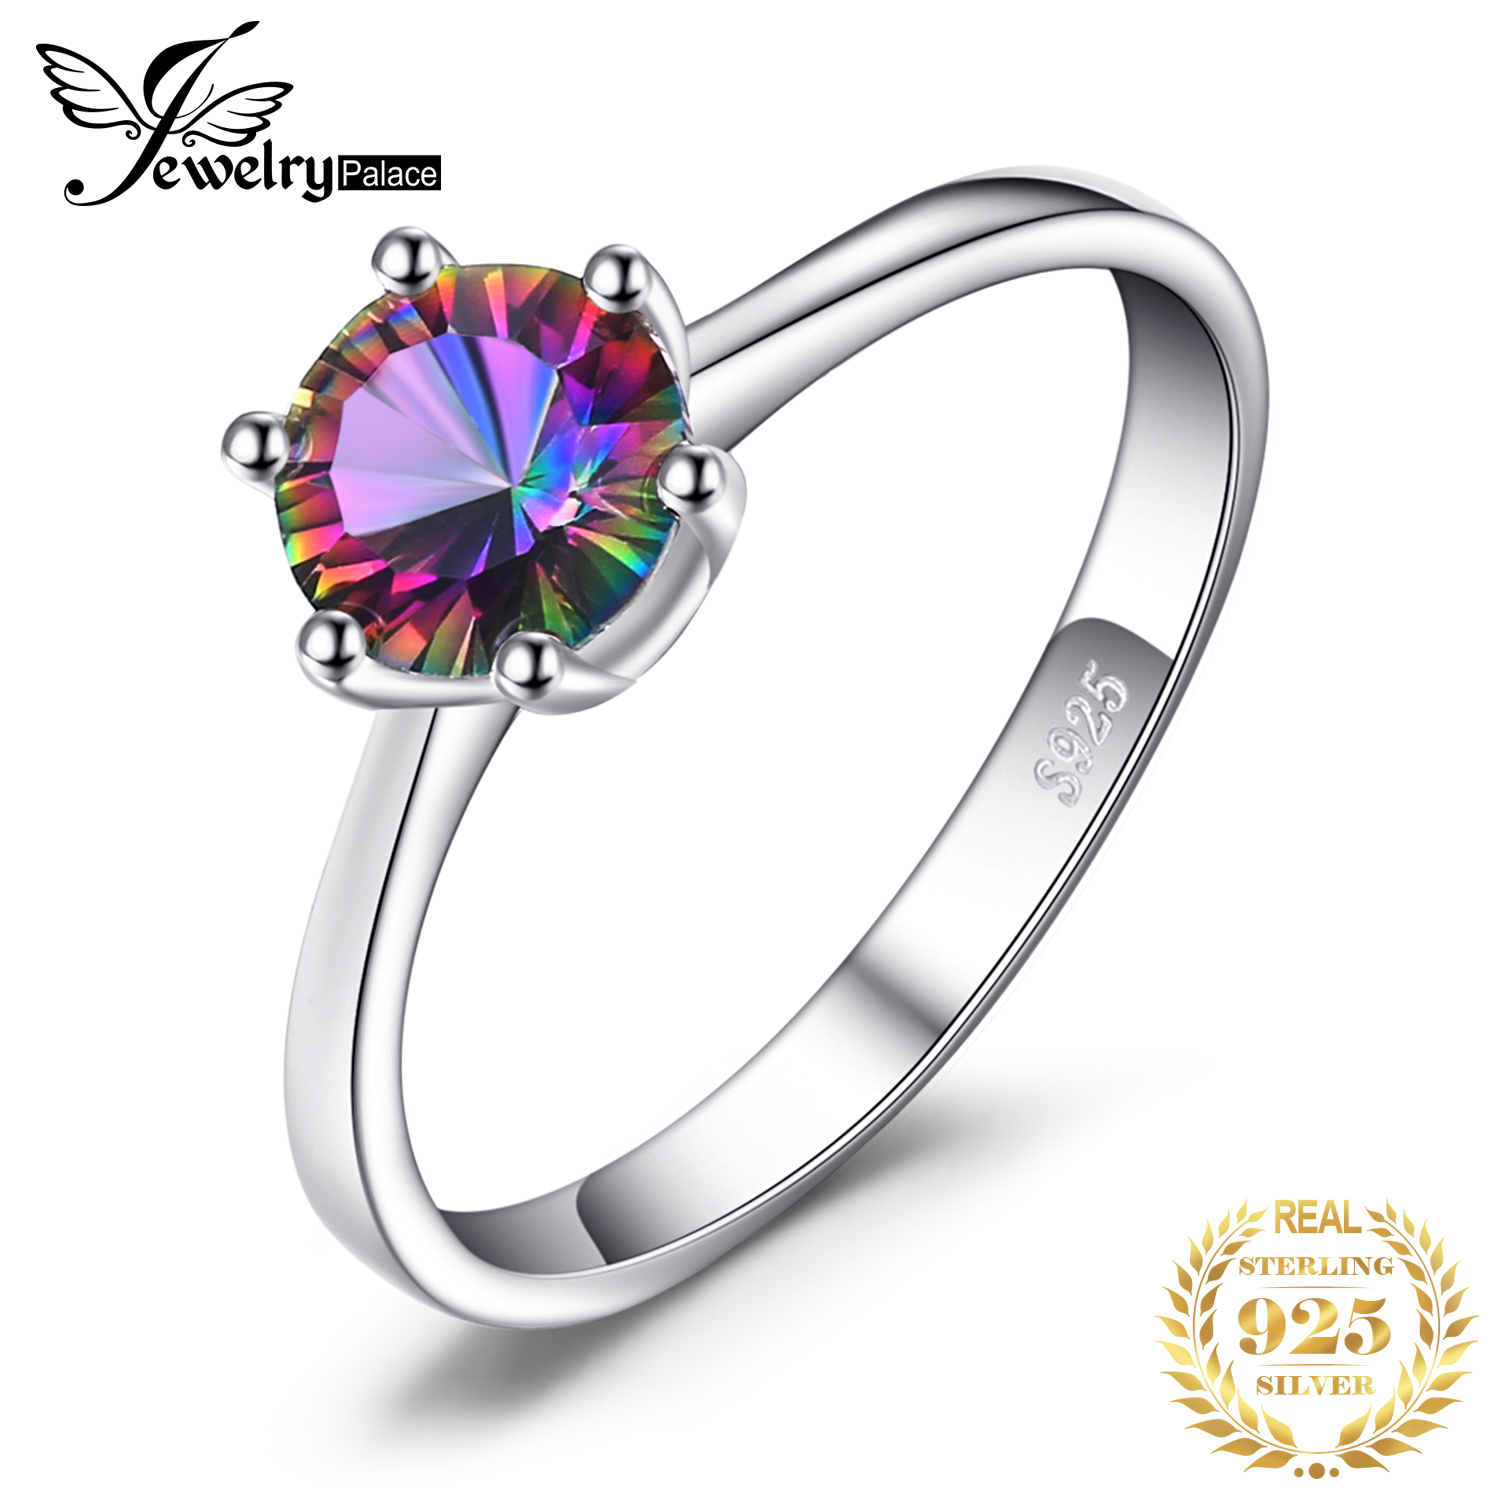 JewelryPalace Genuine Rainbow Mystic Topaz Ring 925 Sterling Silver Rings For Women Engagement Ring Silver 925 Gemstones Jewelry